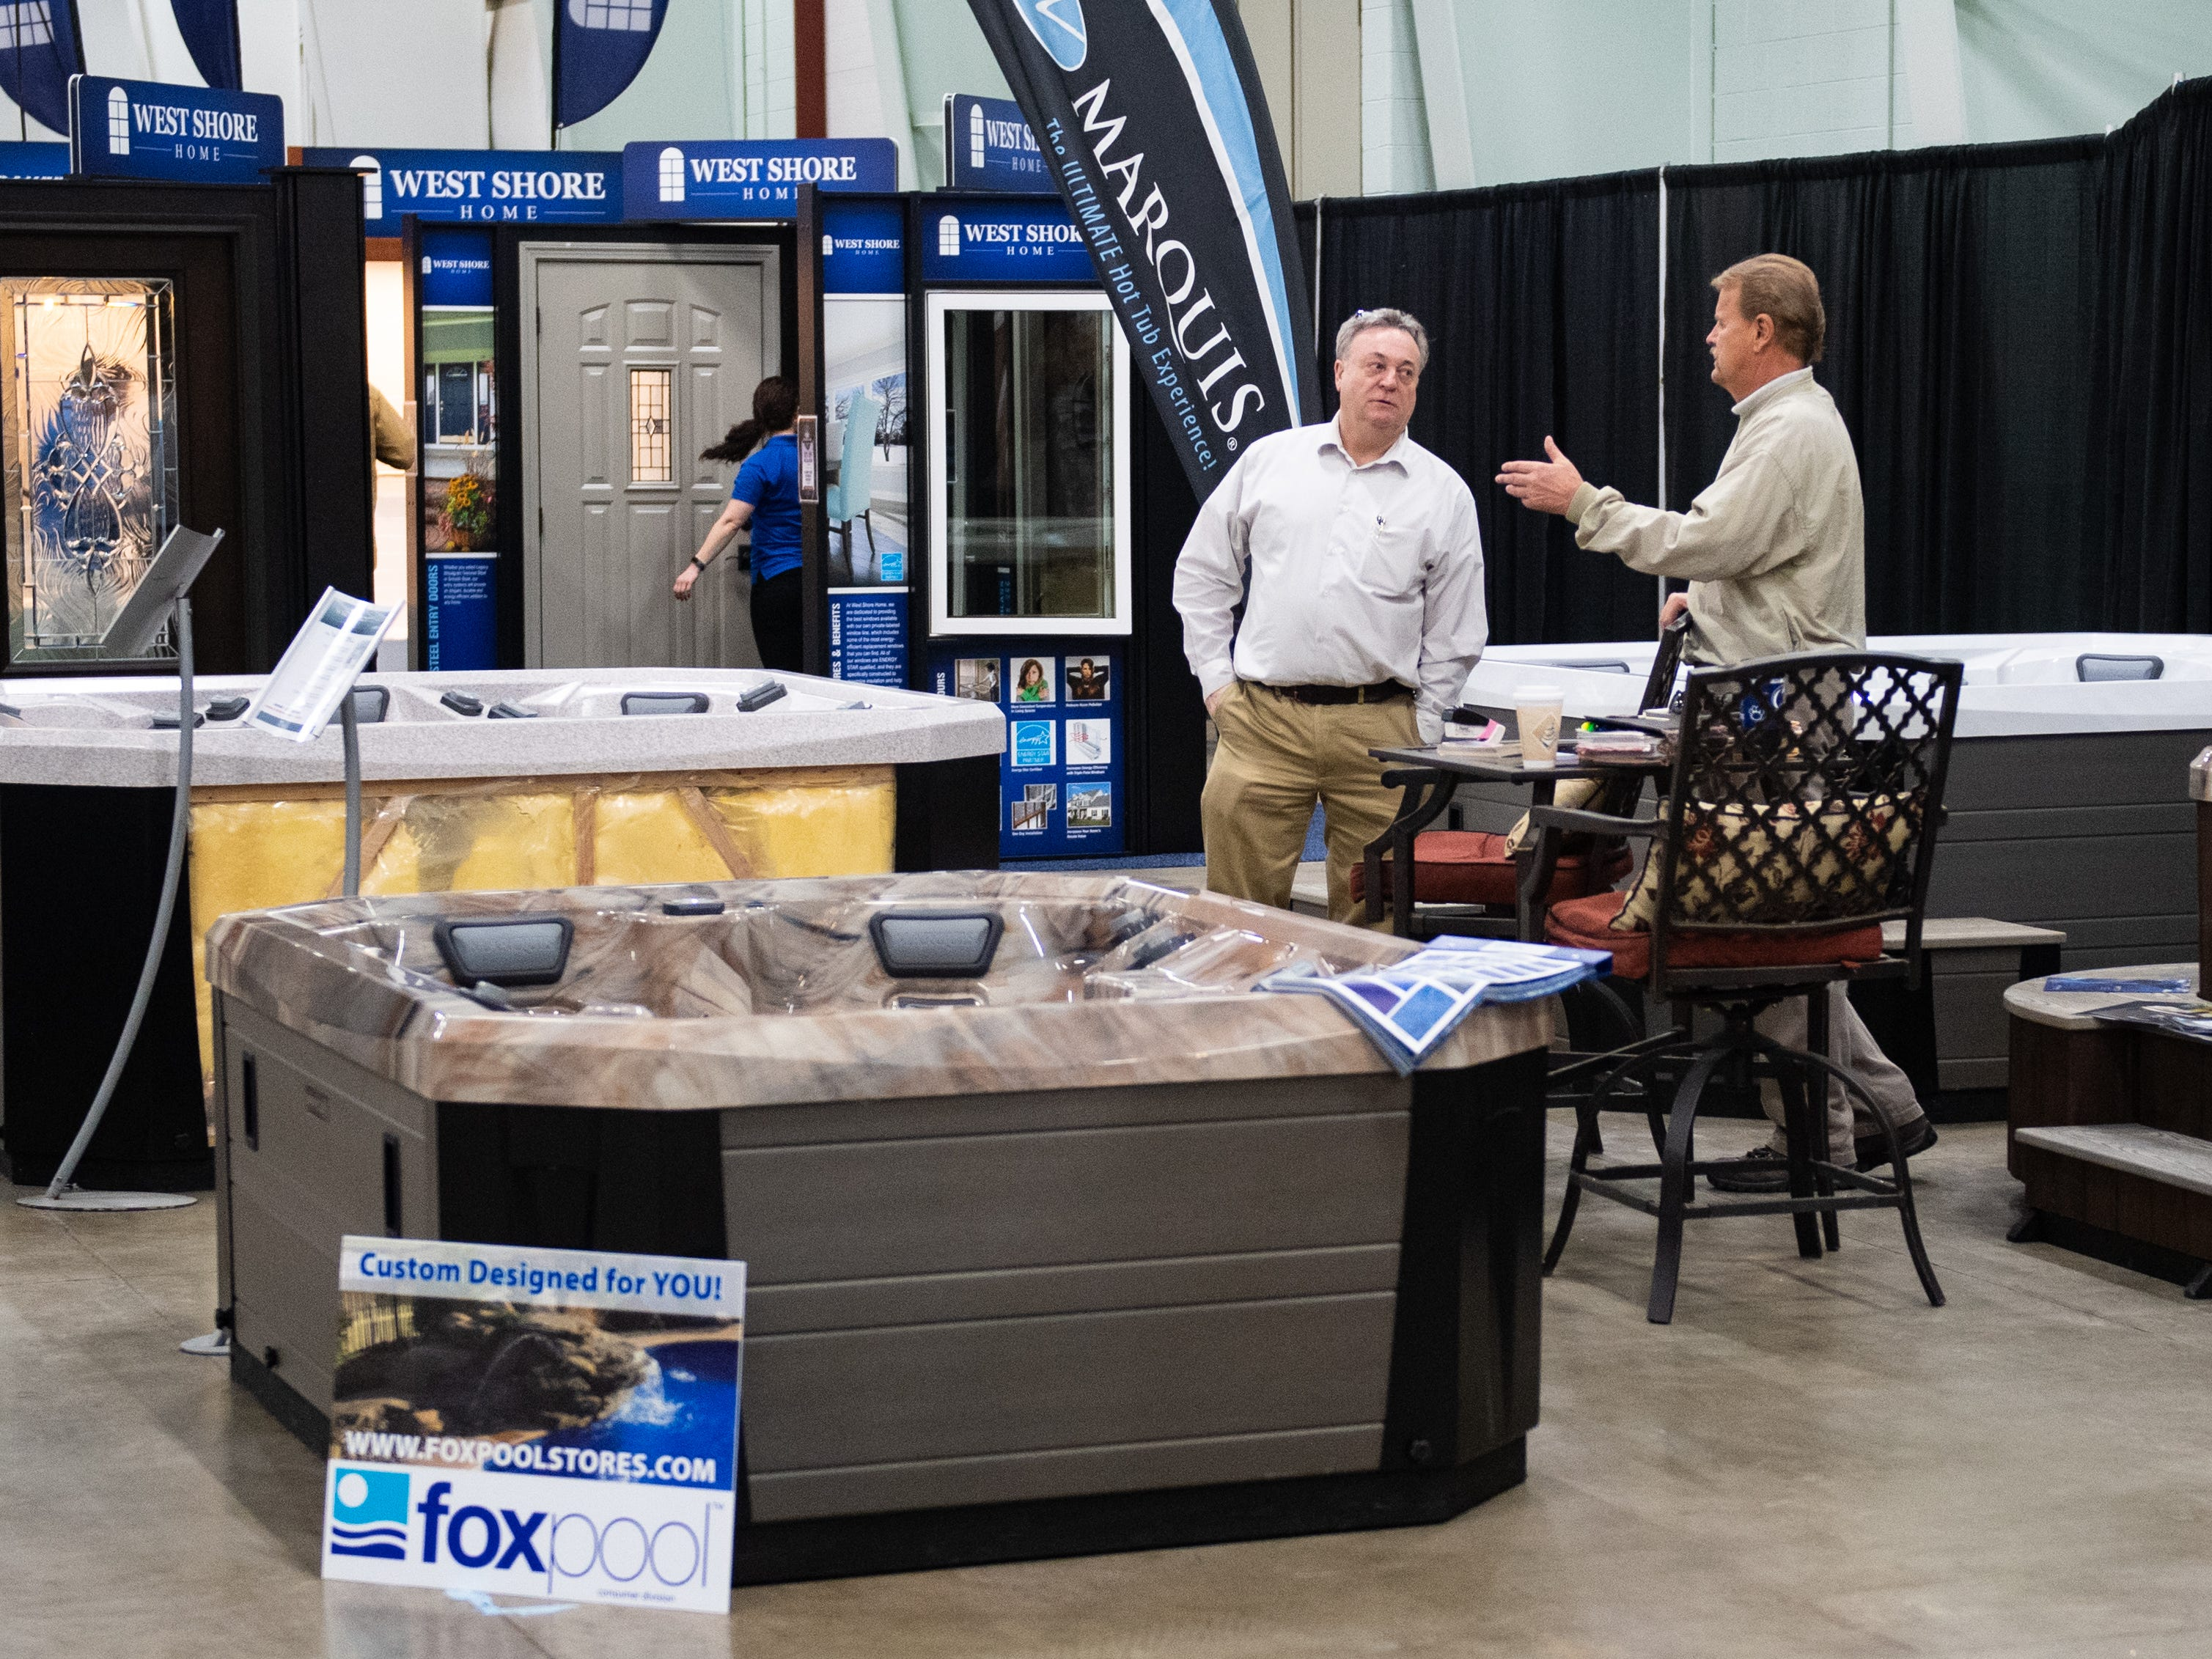 Fox Pool has a booth at the 2019 Home & Garden Show, February 8, 2019.